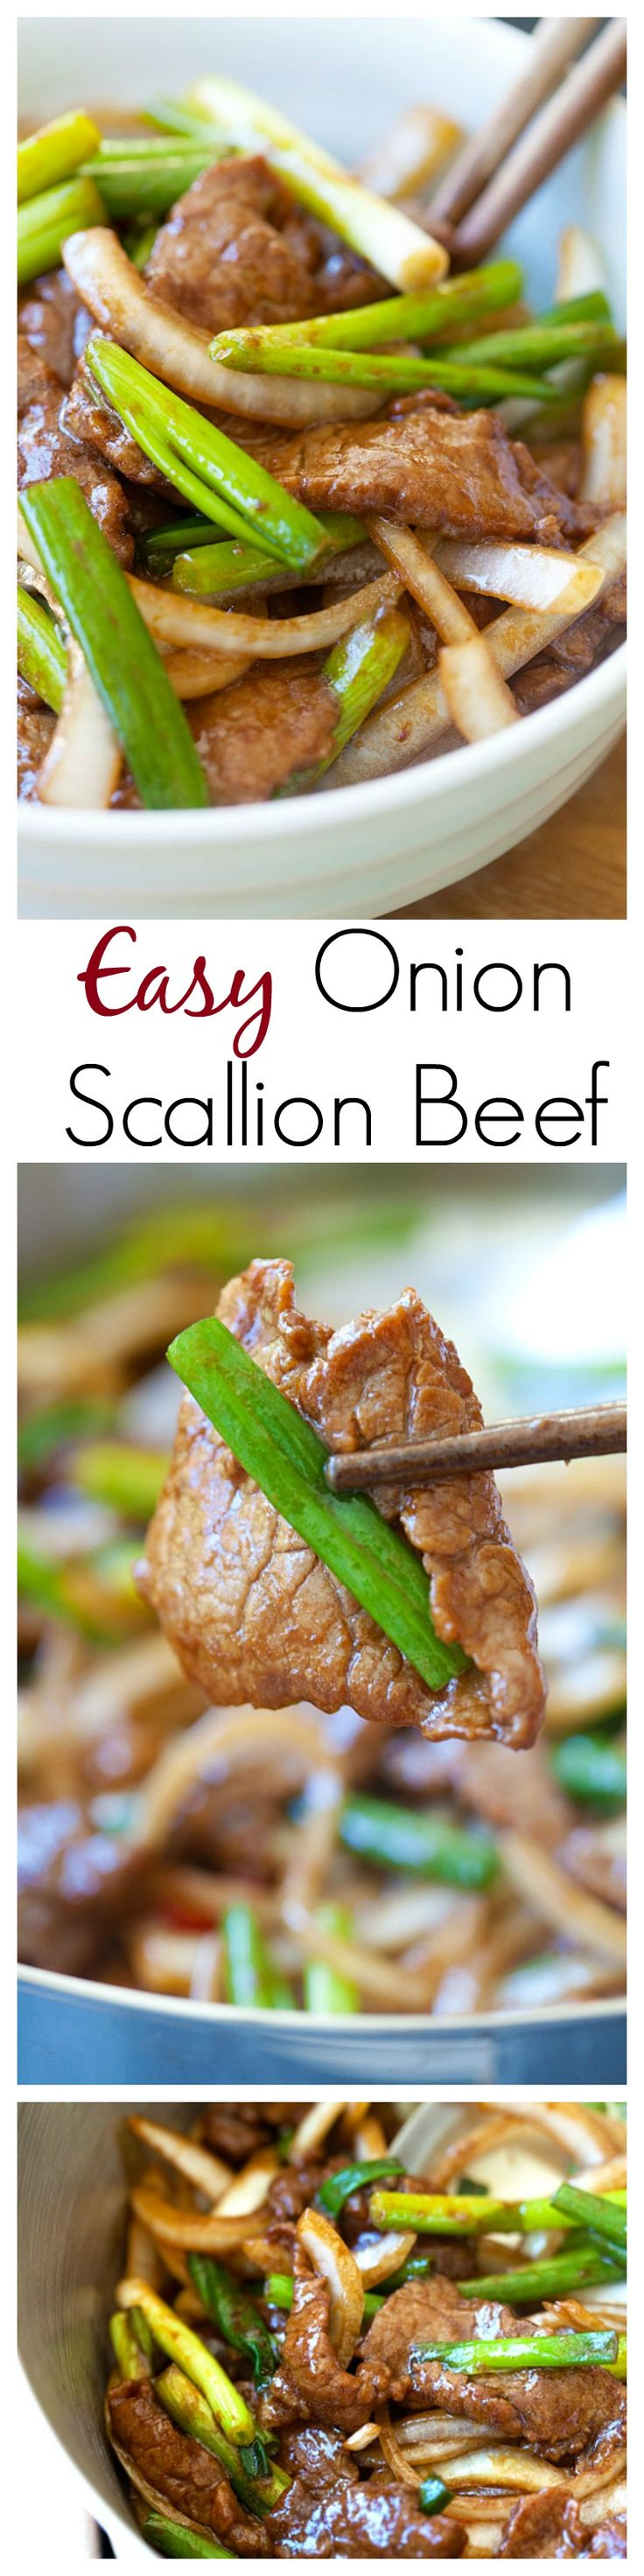 Onion scallion beef – tender juicy beef stir-fry with onions and scallions in Chinese brown sauce. Delicious and easy recipe that takes only 20 mins   rasamalaysia.com